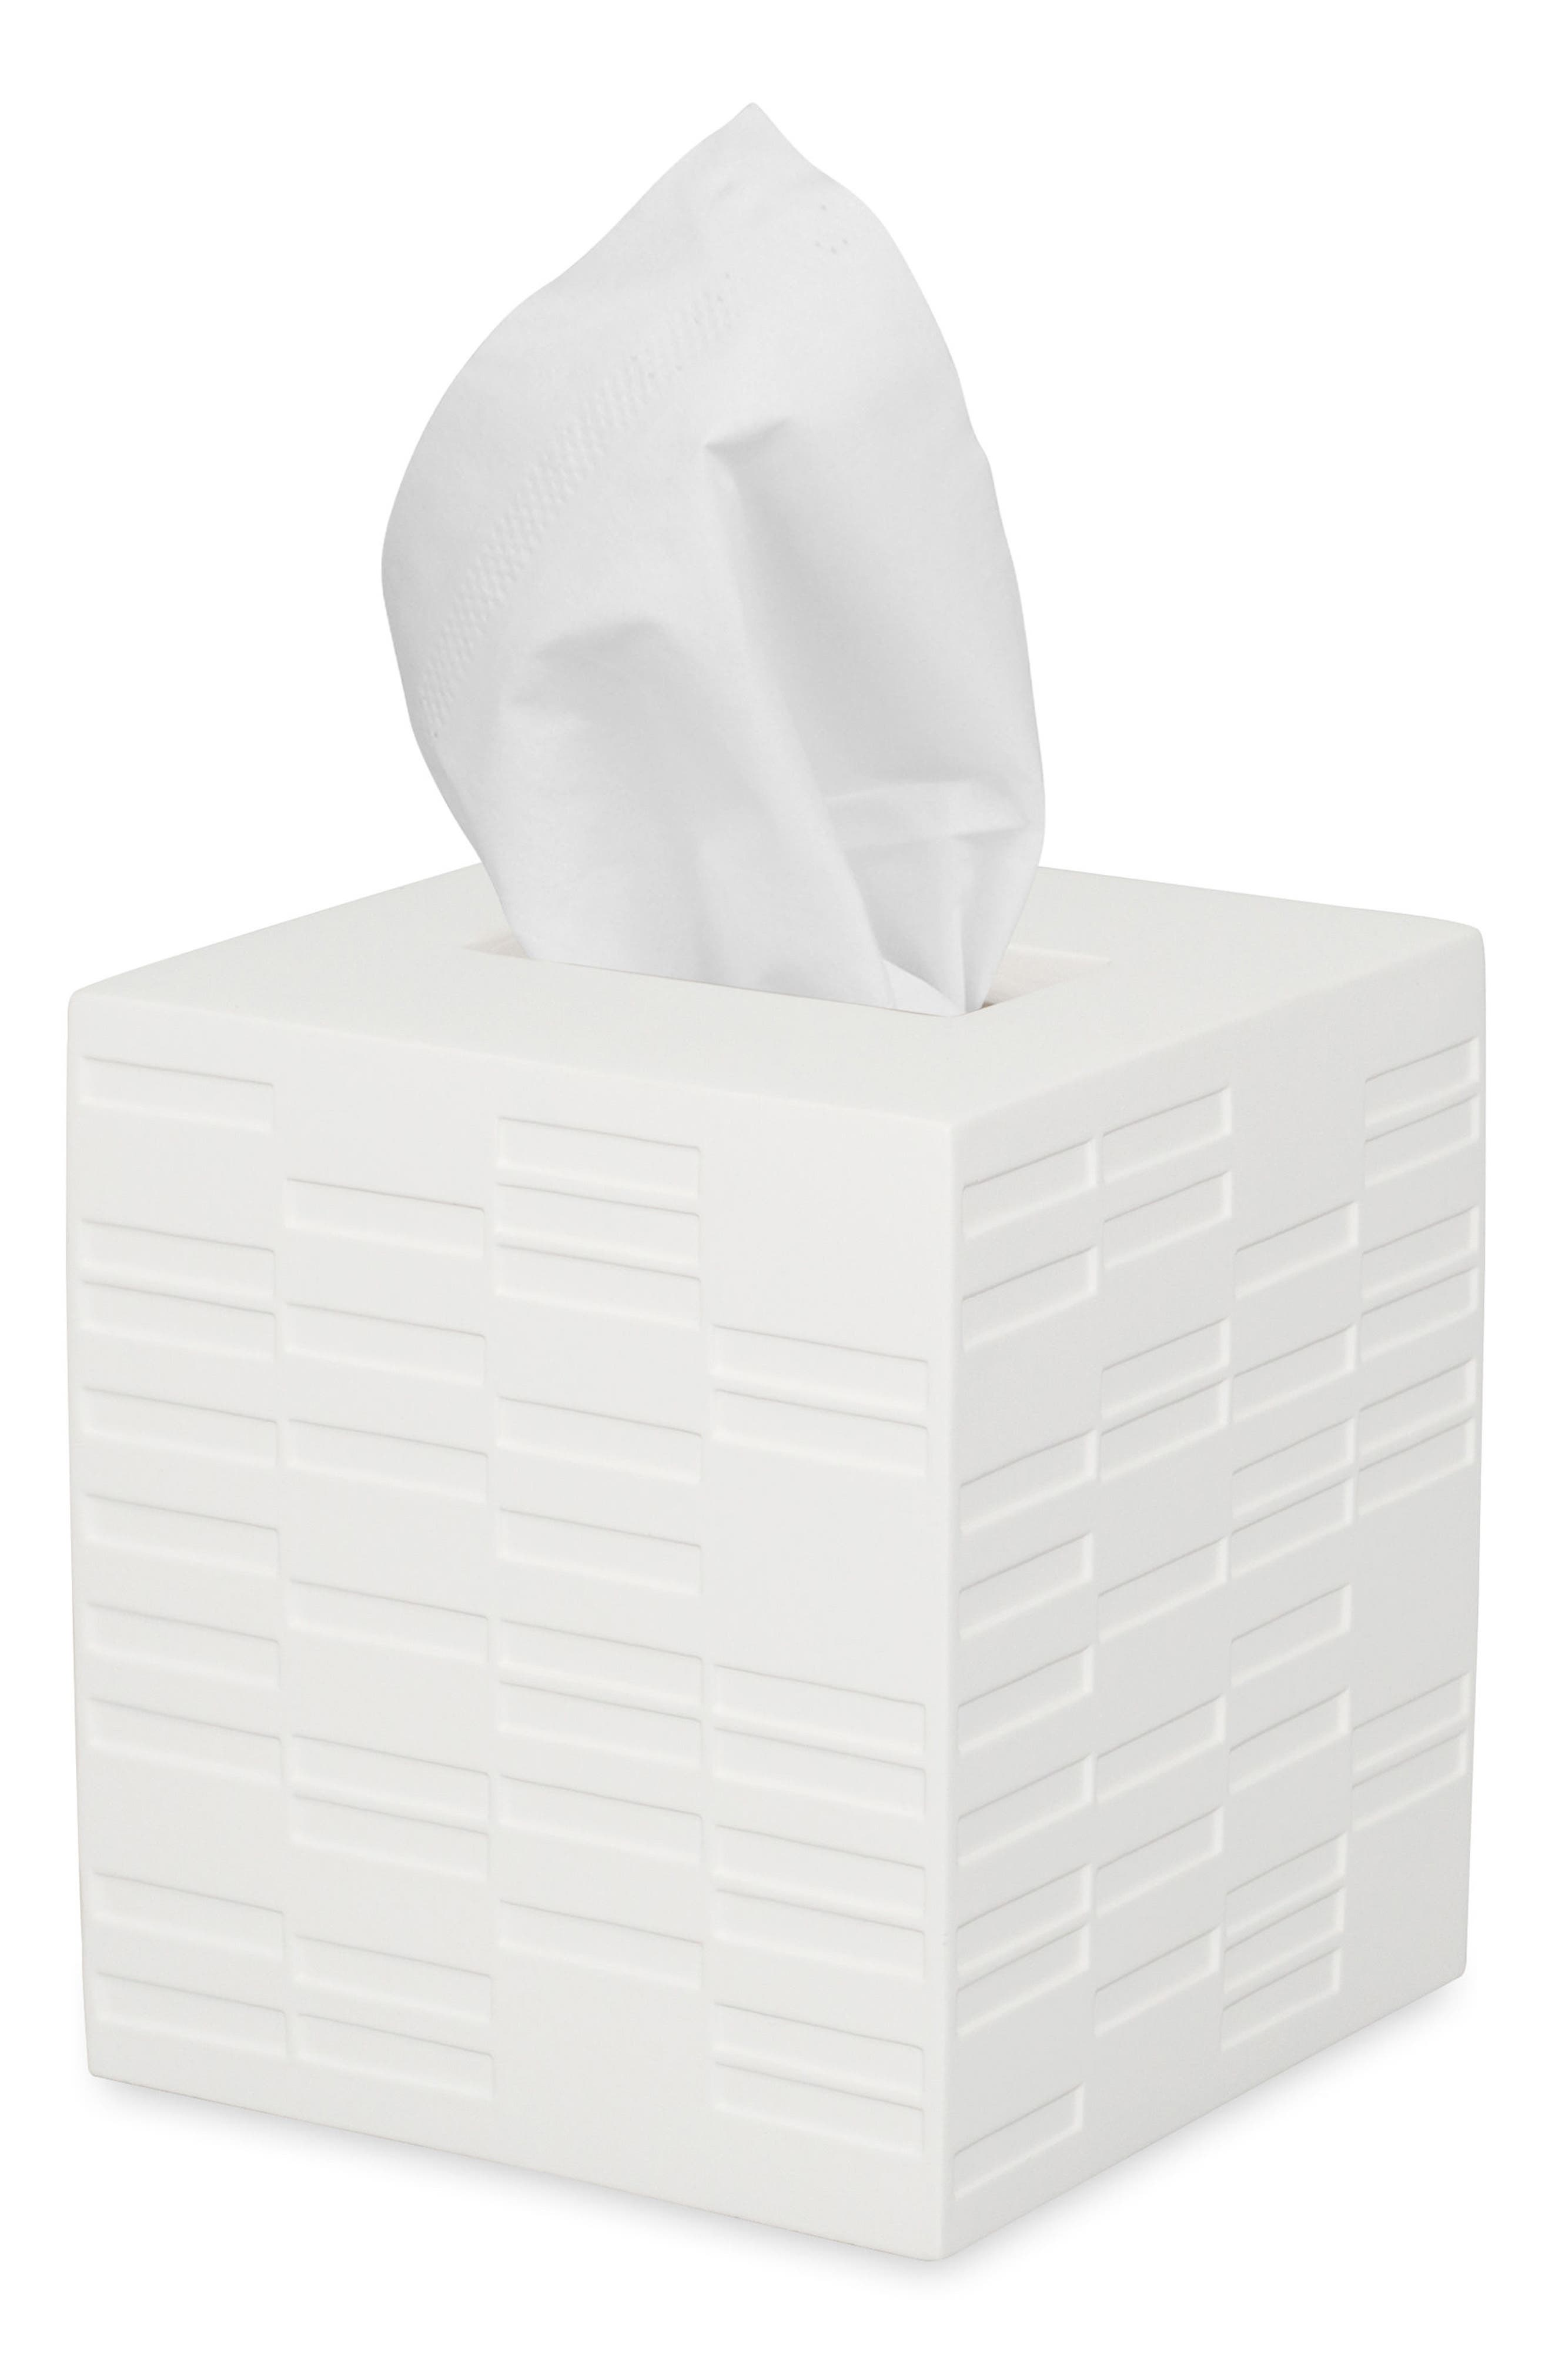 Main Image - DKNY High Rise Tissue Box Cover